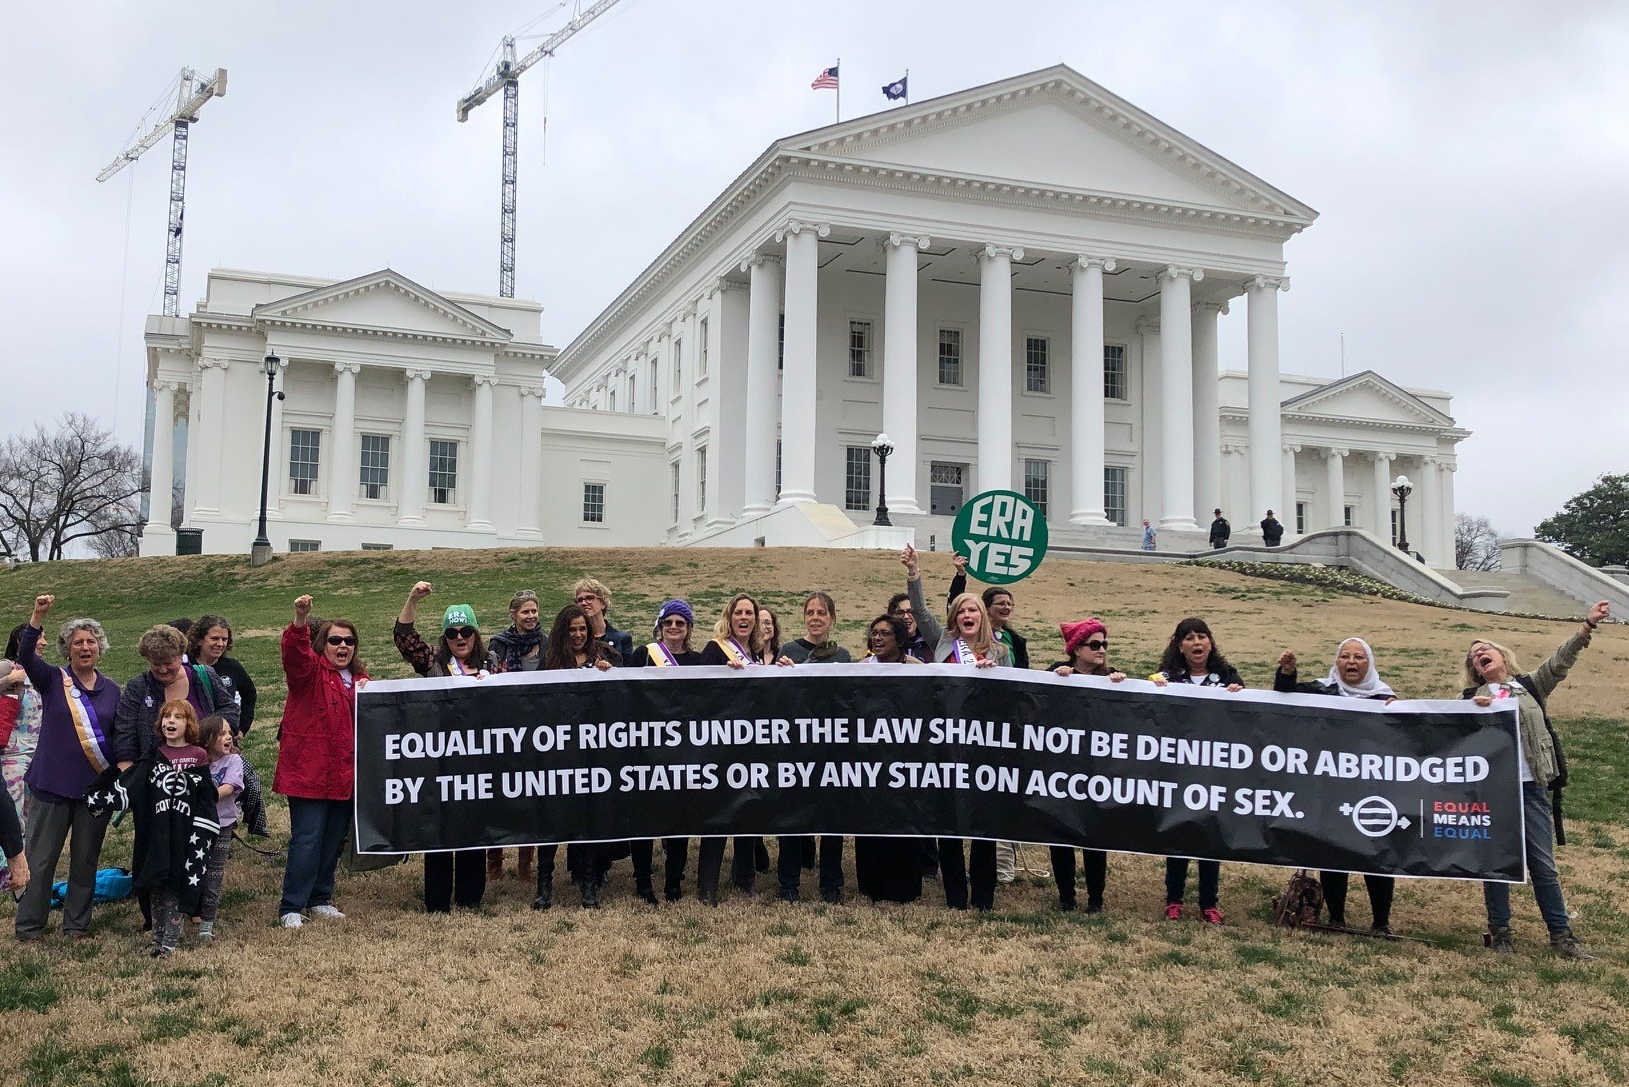 "Group of a couple dozen people with arms raised in victory behind a long banner that reads, ""Equality of Rights Under the Law Shall Not Be Denied or Abridged by the United States or by Any State on Account of Sex"" standing in front of the Virginia State Capitol."